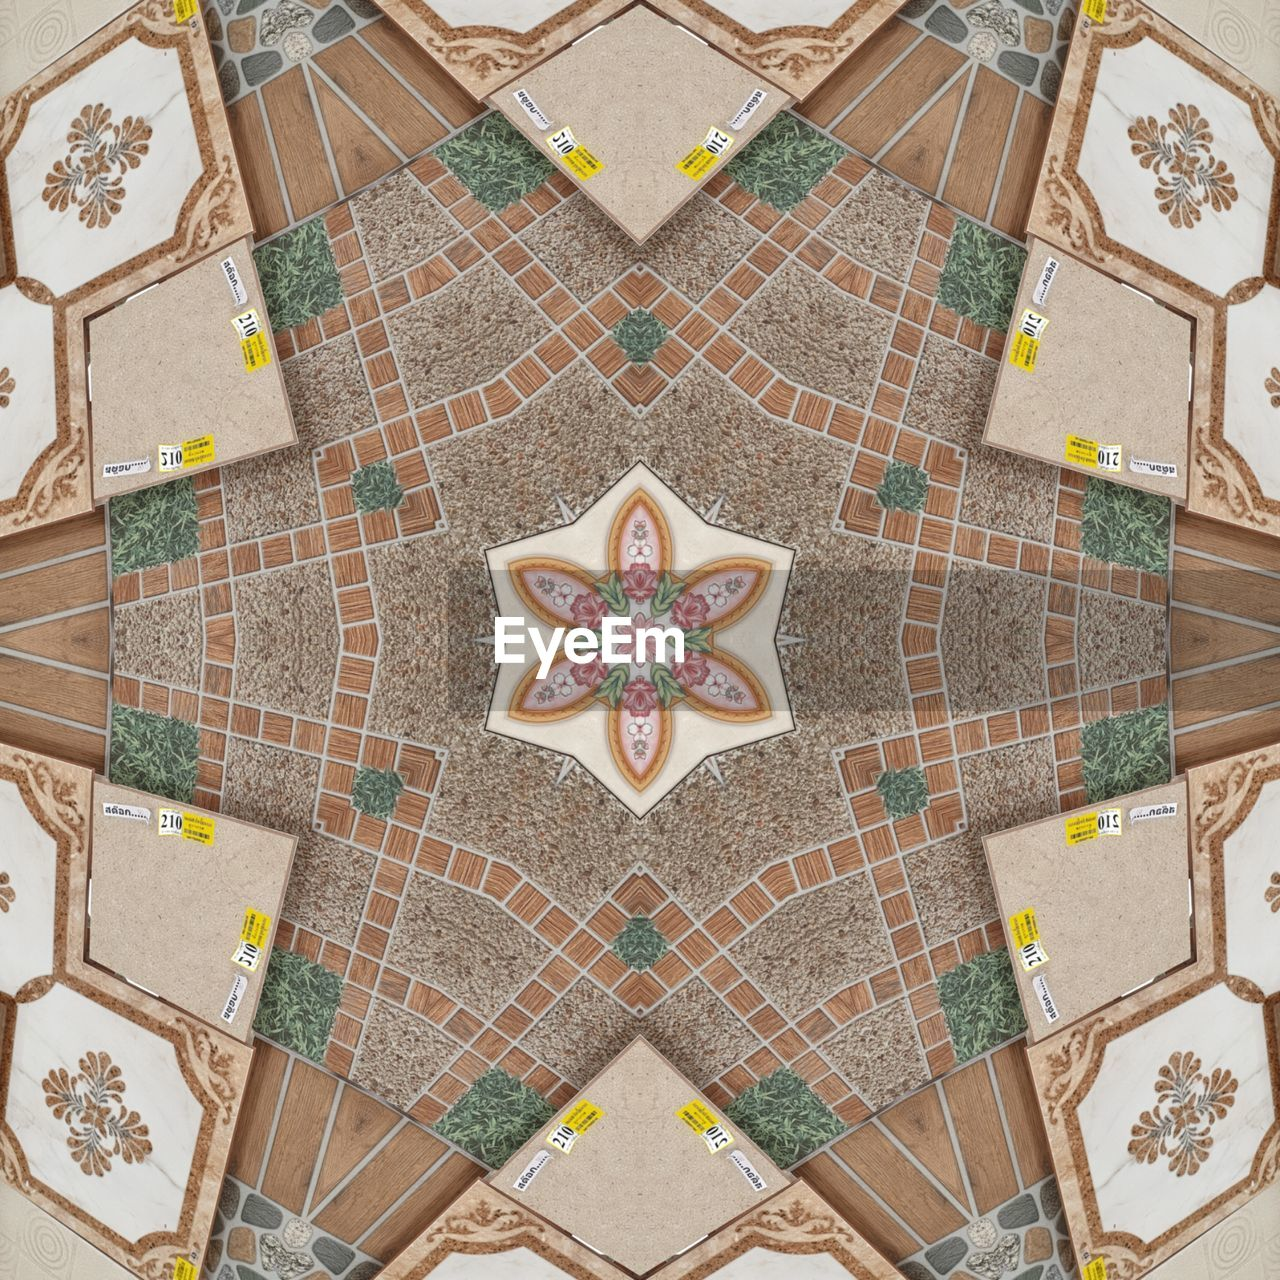 pattern, design, tiled floor, high angle view, shape, tile, directly above, no people, creativity, floral pattern, flooring, star shape, indoors, holiday, art and craft, decoration, architecture, christmas